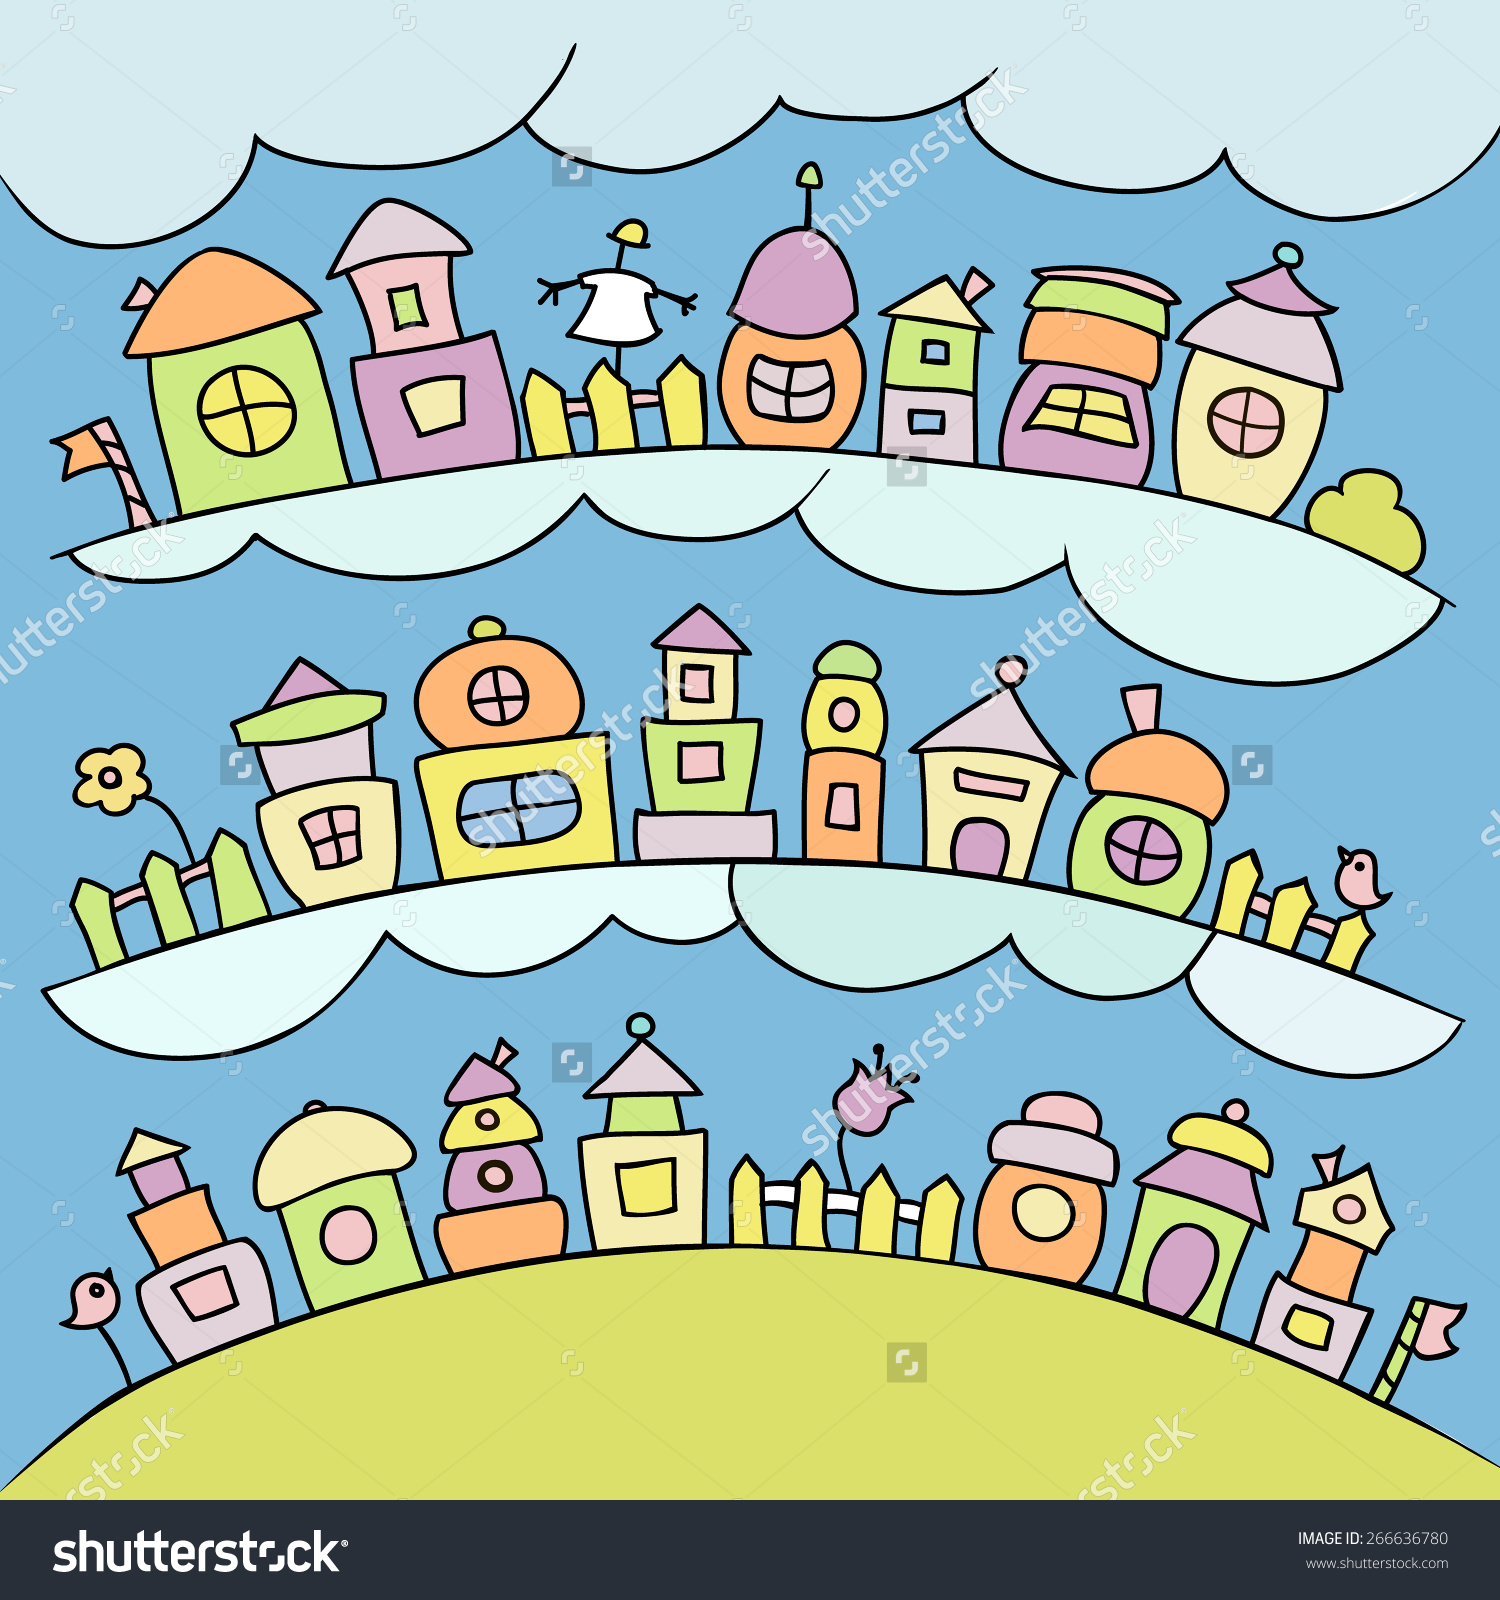 Colored Kids Town With Clouds And Cute Elements. Cartoon Houses In.